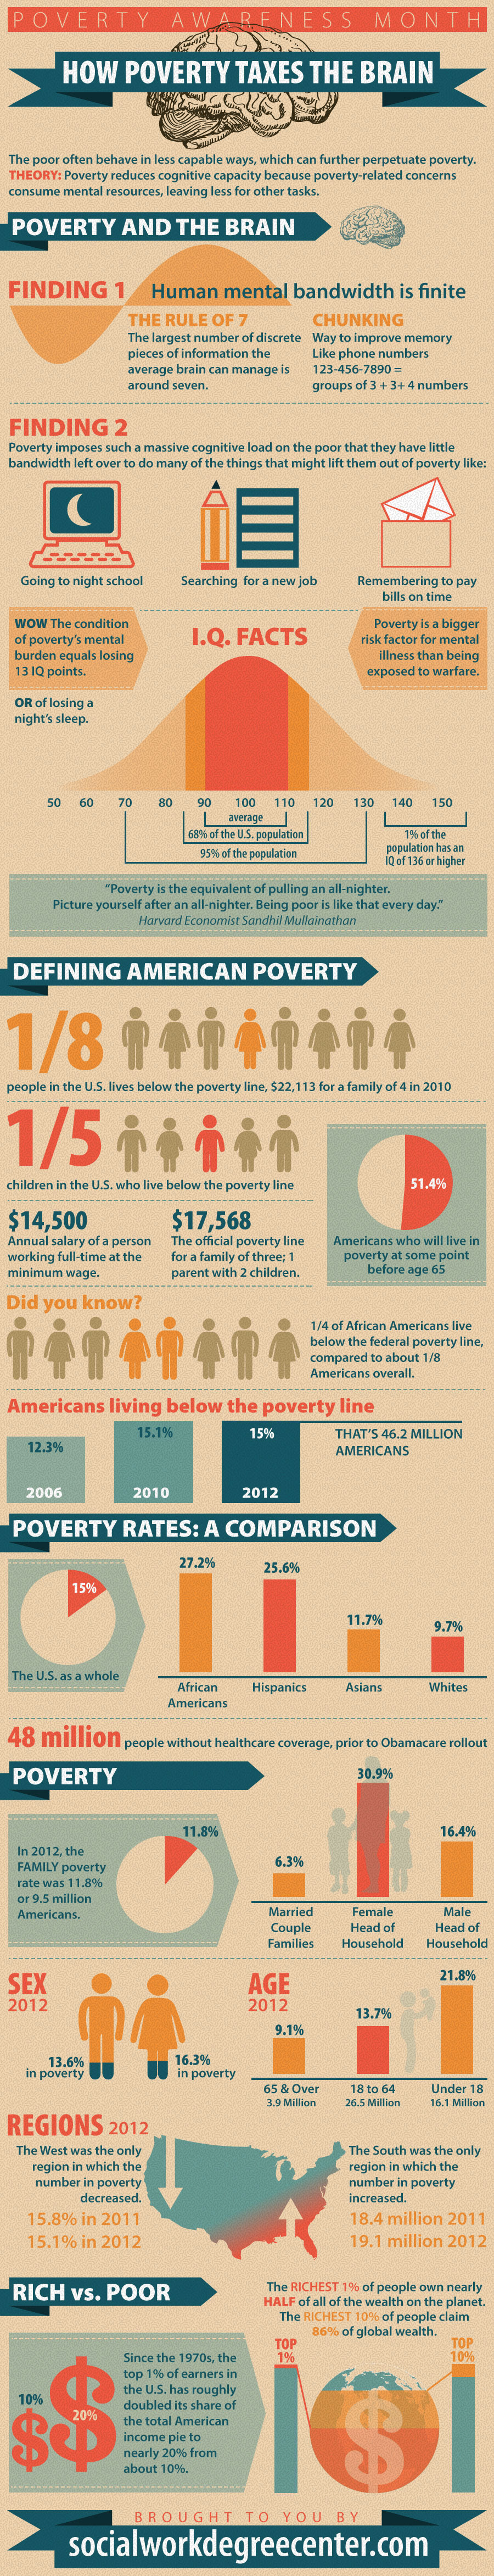 """Poverty and the Brain"" width=""500""  border=""0"" /></a><br />Source: <a href=""http://www.socialworkdegreecenter.com/"">SocialWorkDegreeCenter.comt</a>"